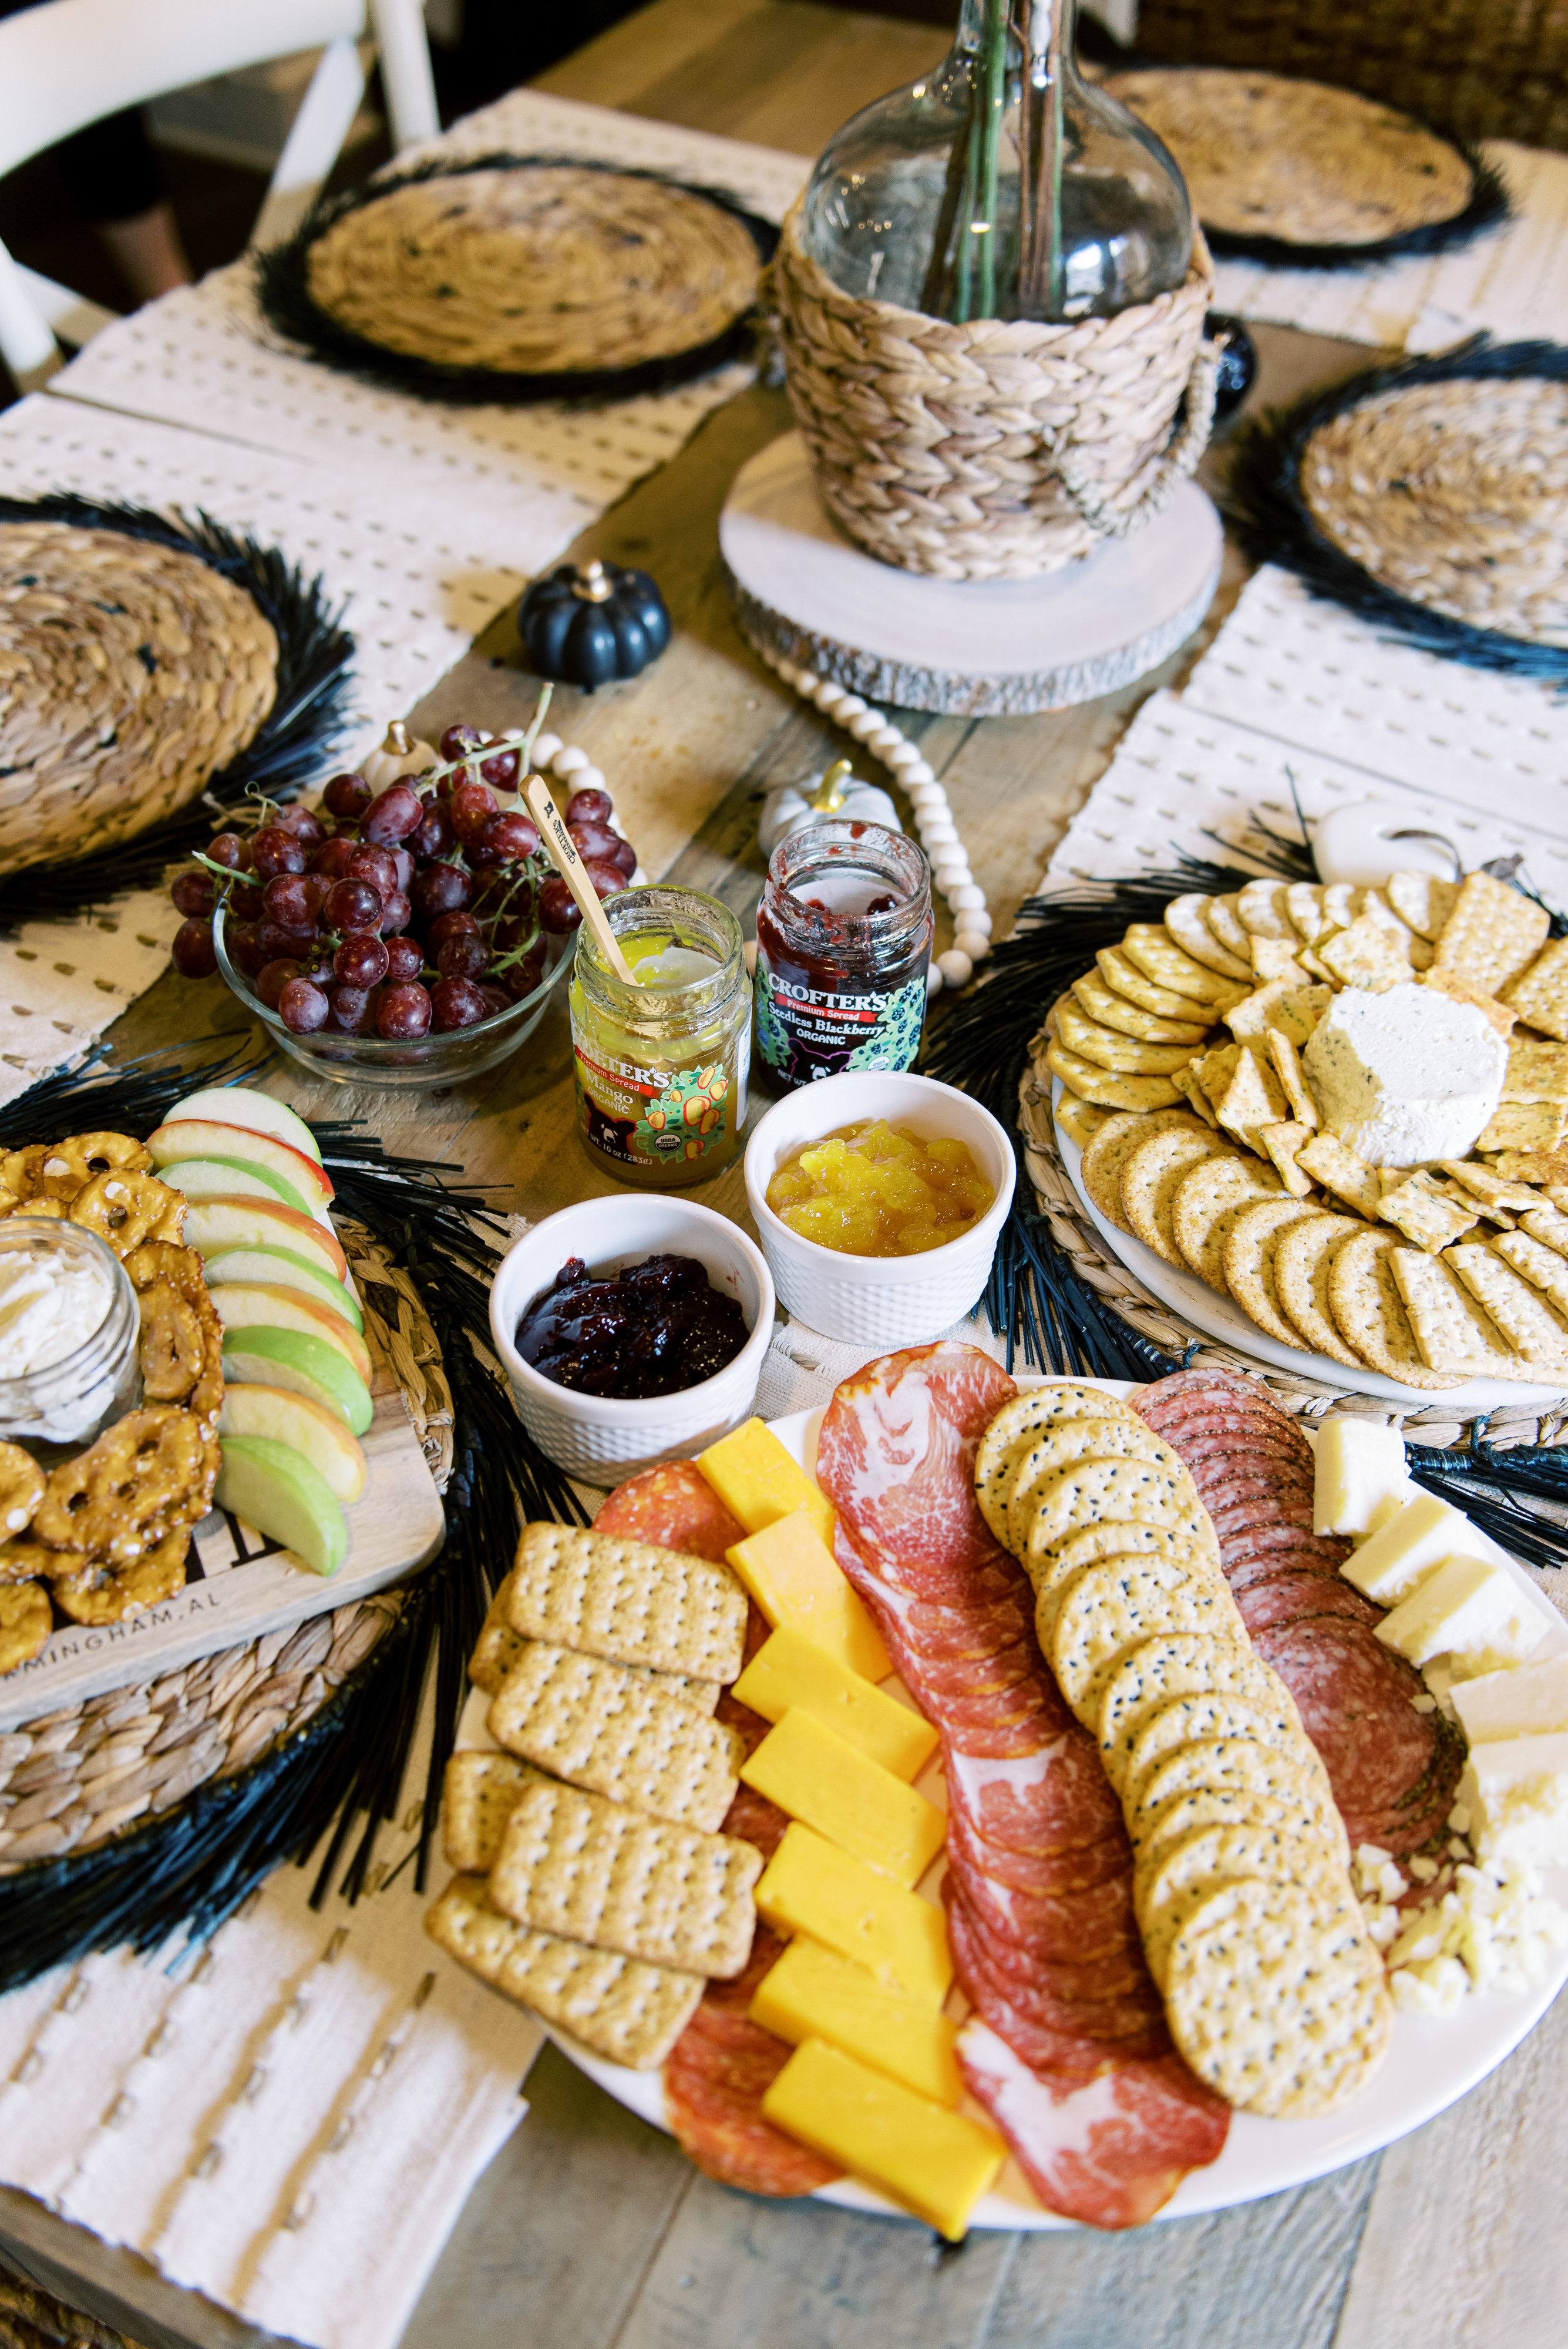 8 Essentials To Make The Perfect Fall Charcuterie Board by Life + Style Blogger, Heather Brown // My Life Well Loved